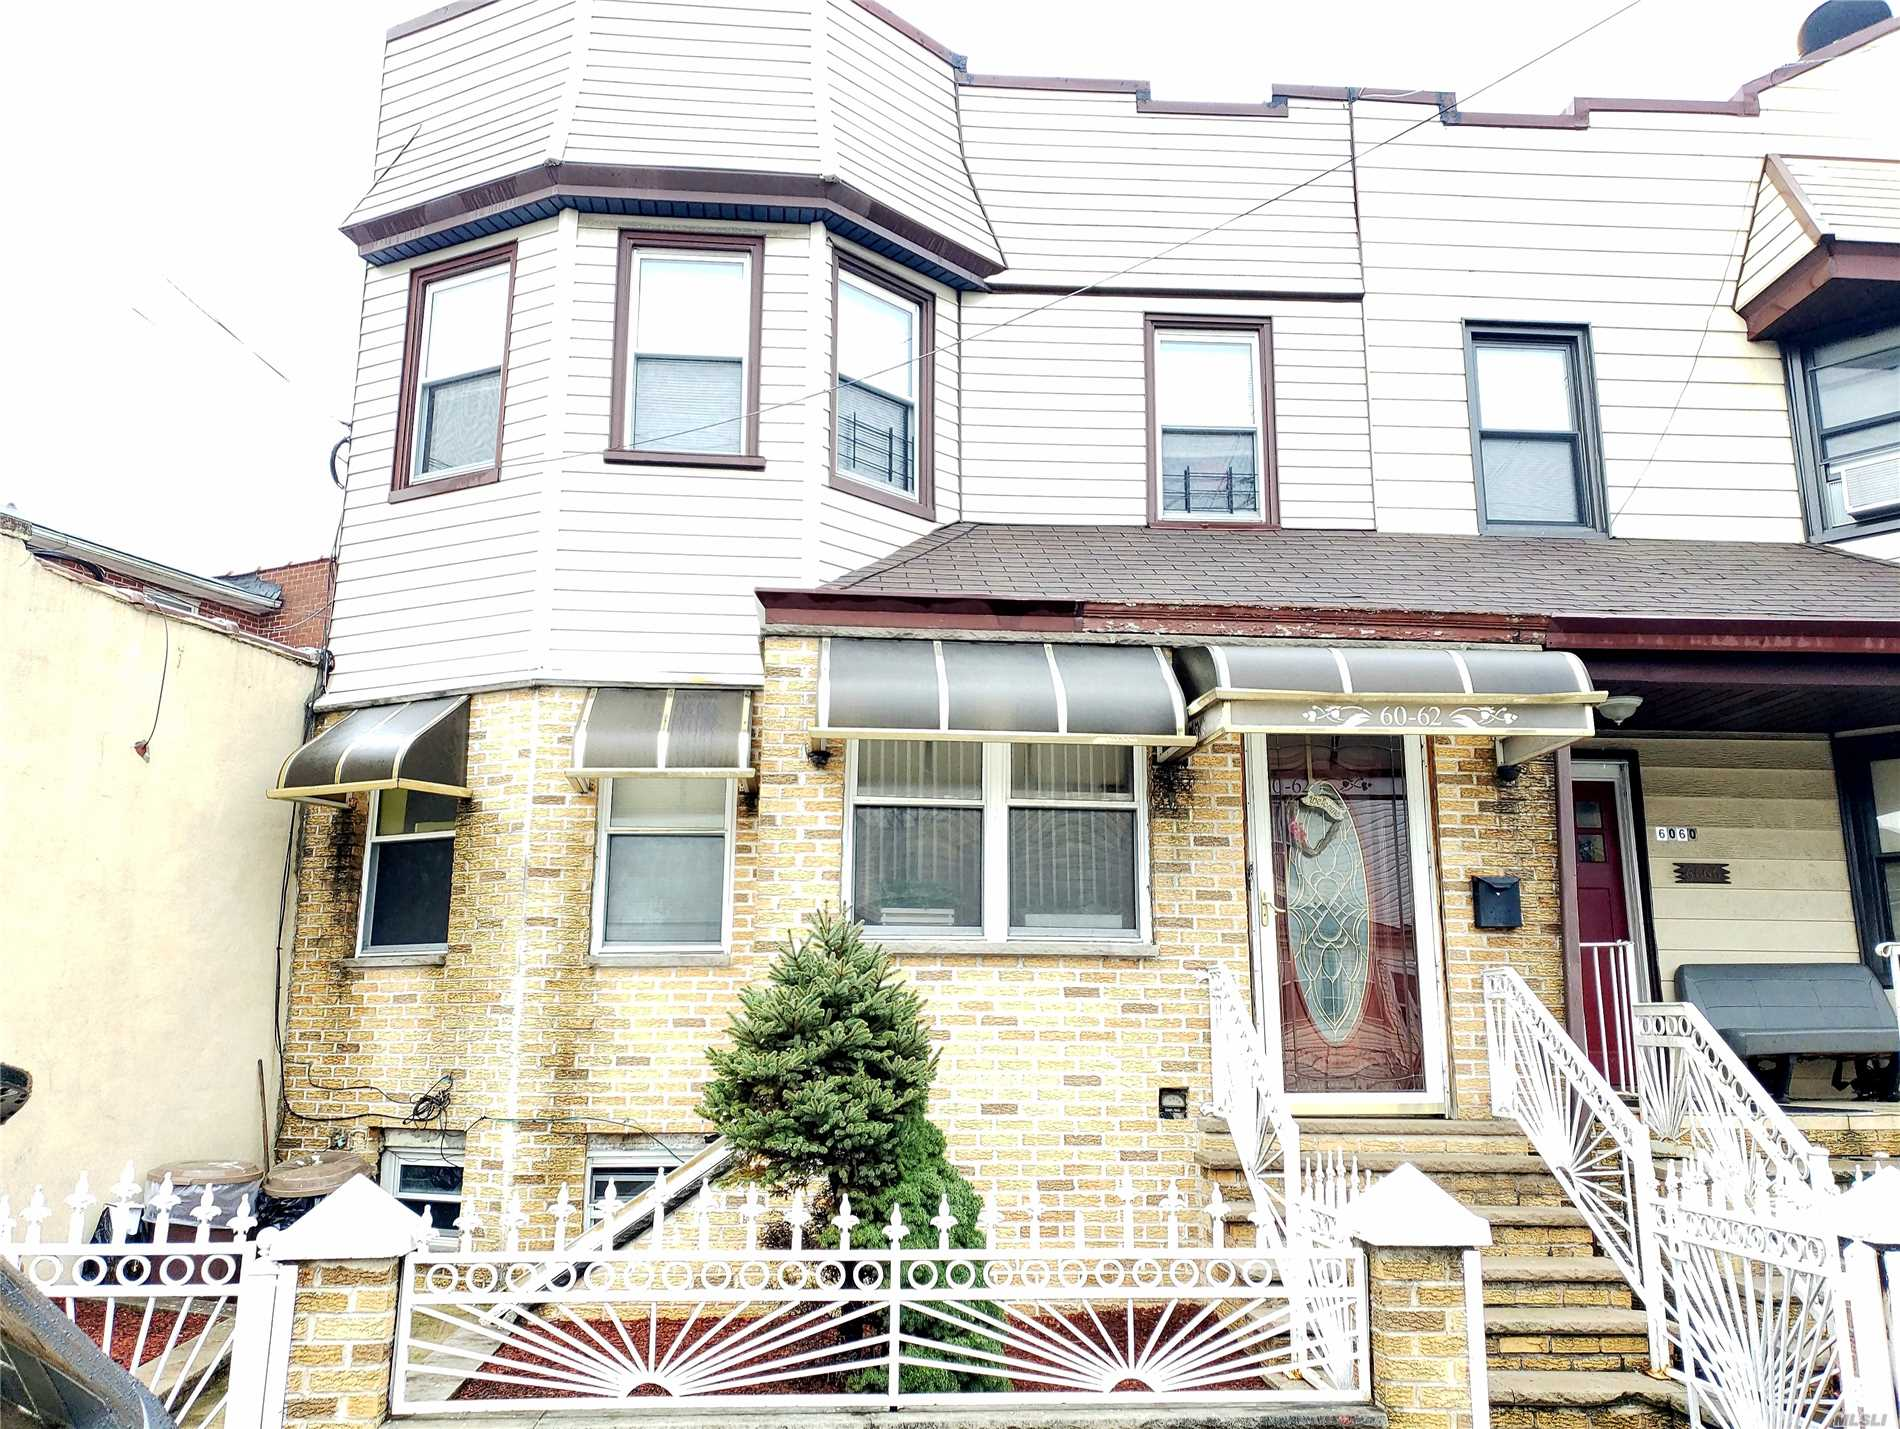 Welcome To A Great Place To Call Home. Duplex Unit and Spacious Home With An Appealing Layout And A Surprisingly Large Lot w/ a Community Driveway And Off Street Parking For Up To 4 Cars. Near Jackie Robinson Pkwy, Q39, B13 Bus lines and 20 min walk to L train.